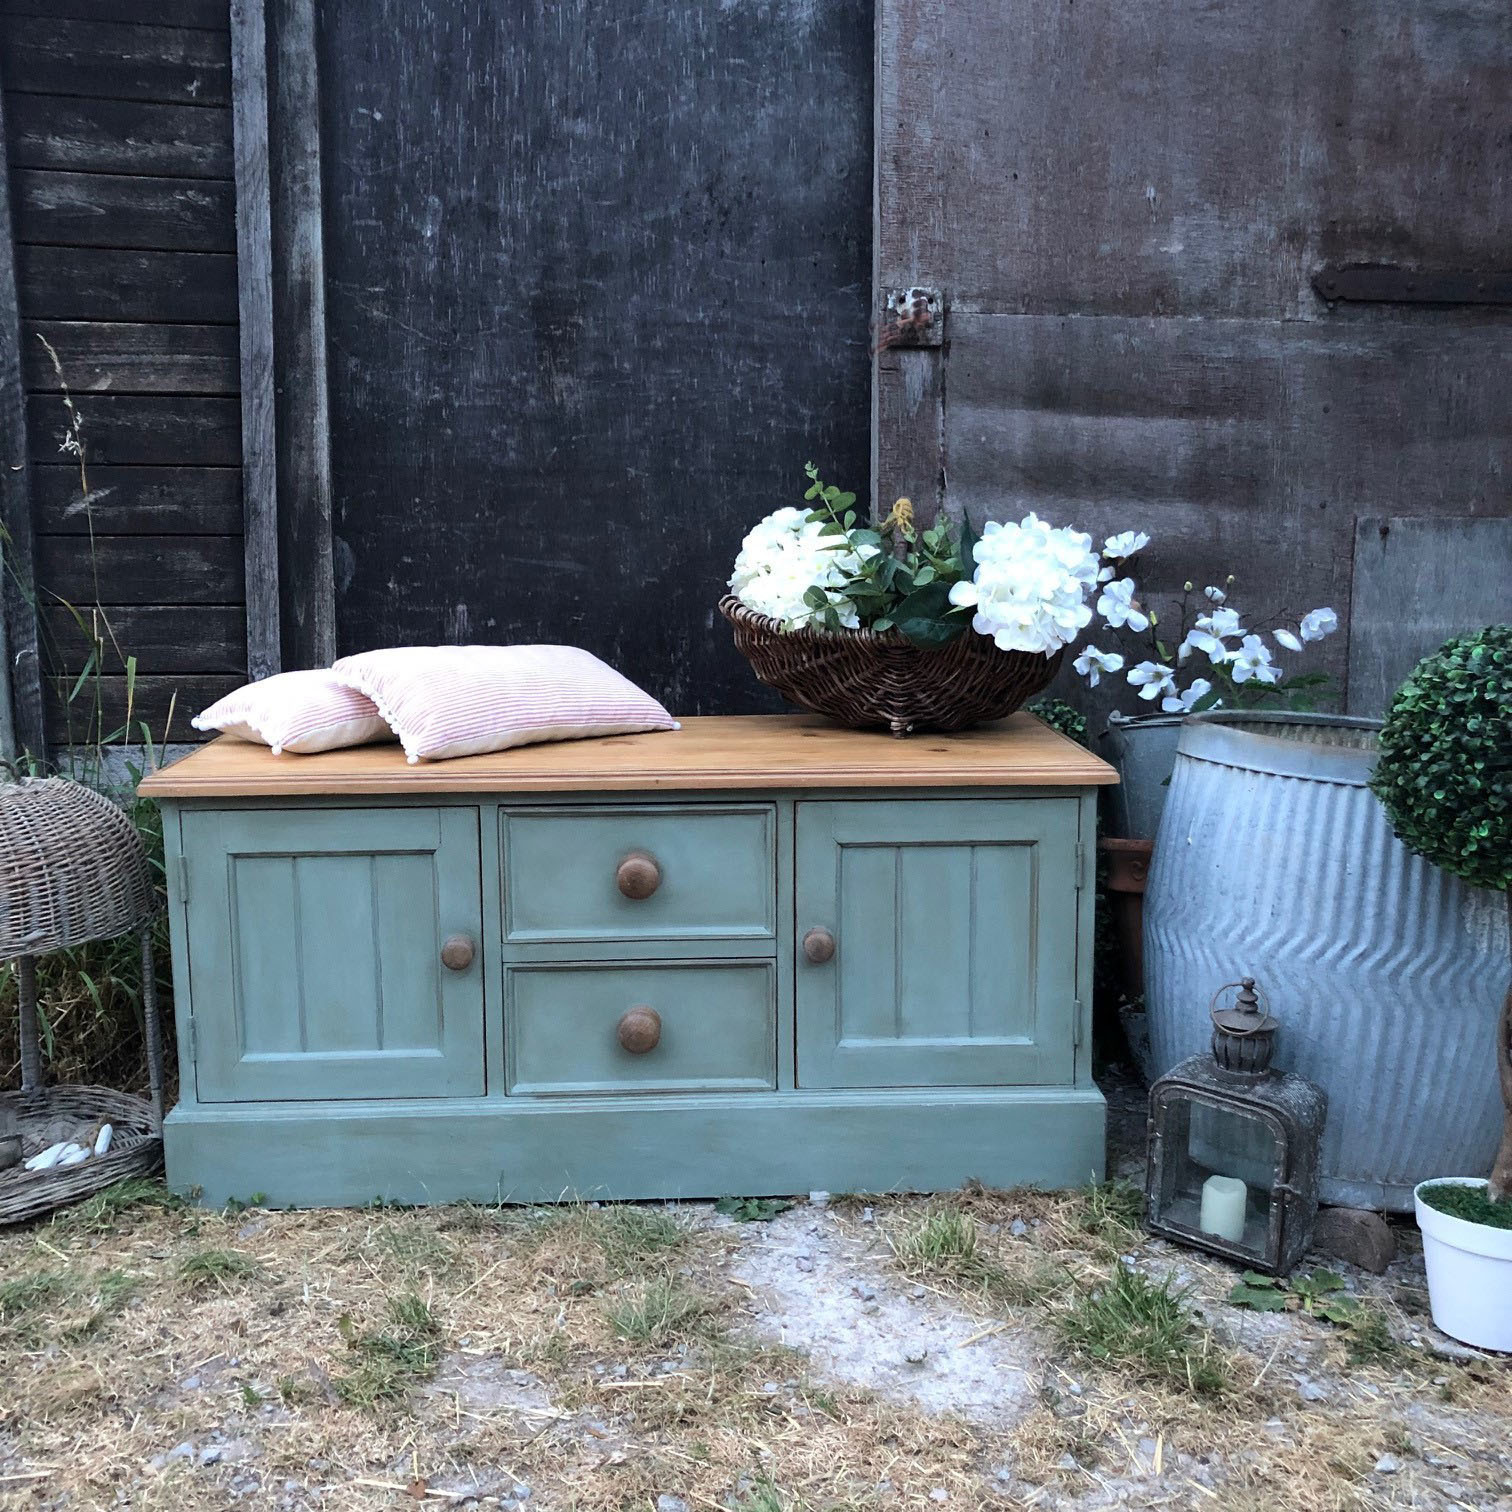 Astonishing Duck Egg Blue Hand Painted Vintage Pine Country Farmhouse Storage Bench End Of Bed Ottoman Tv Cabinet Evergreenethics Interior Chair Design Evergreenethicsorg